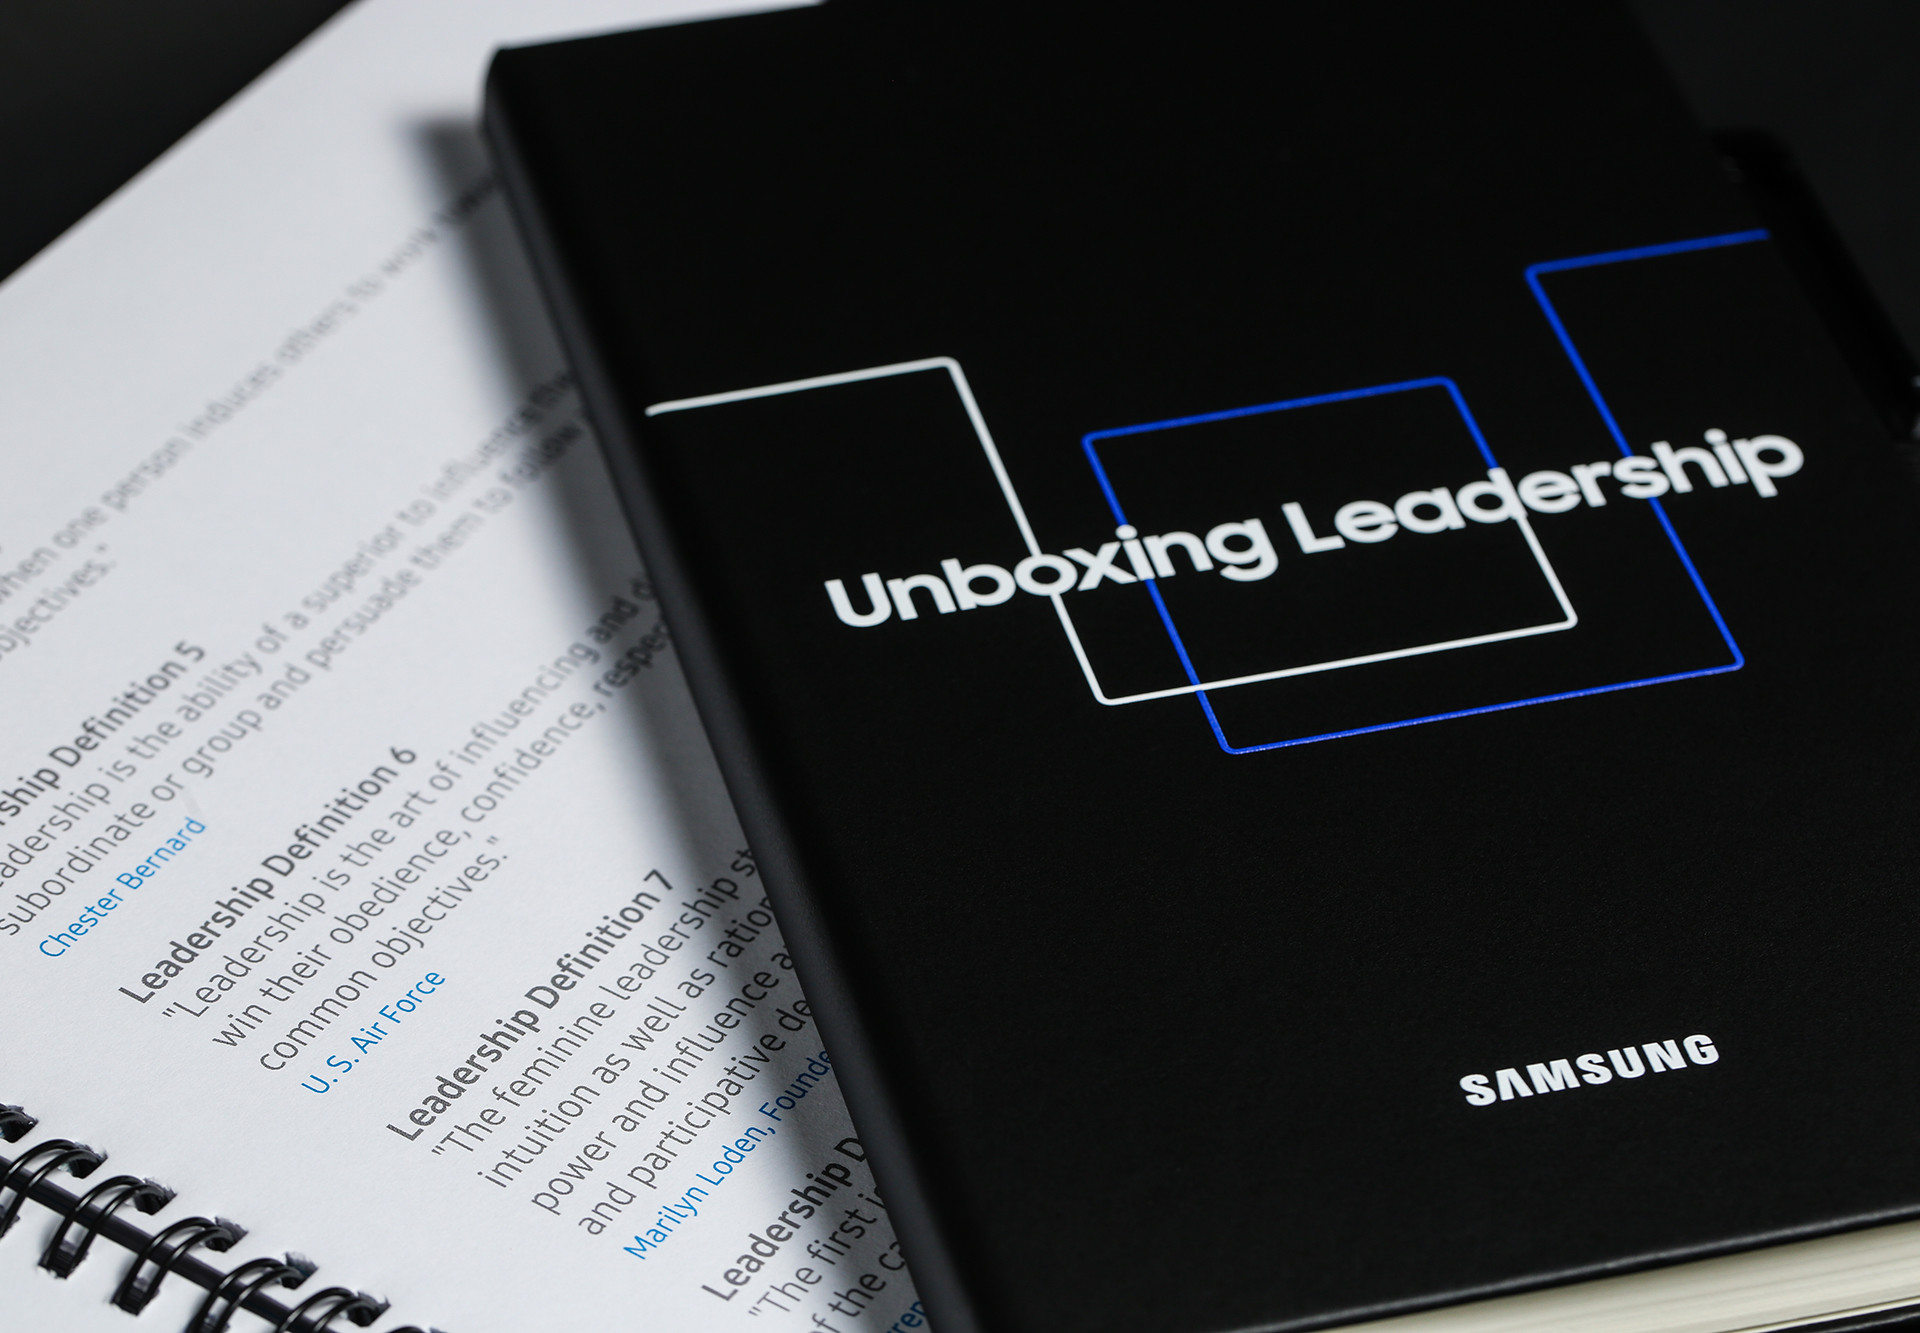 Samsung Unboxing Leadership